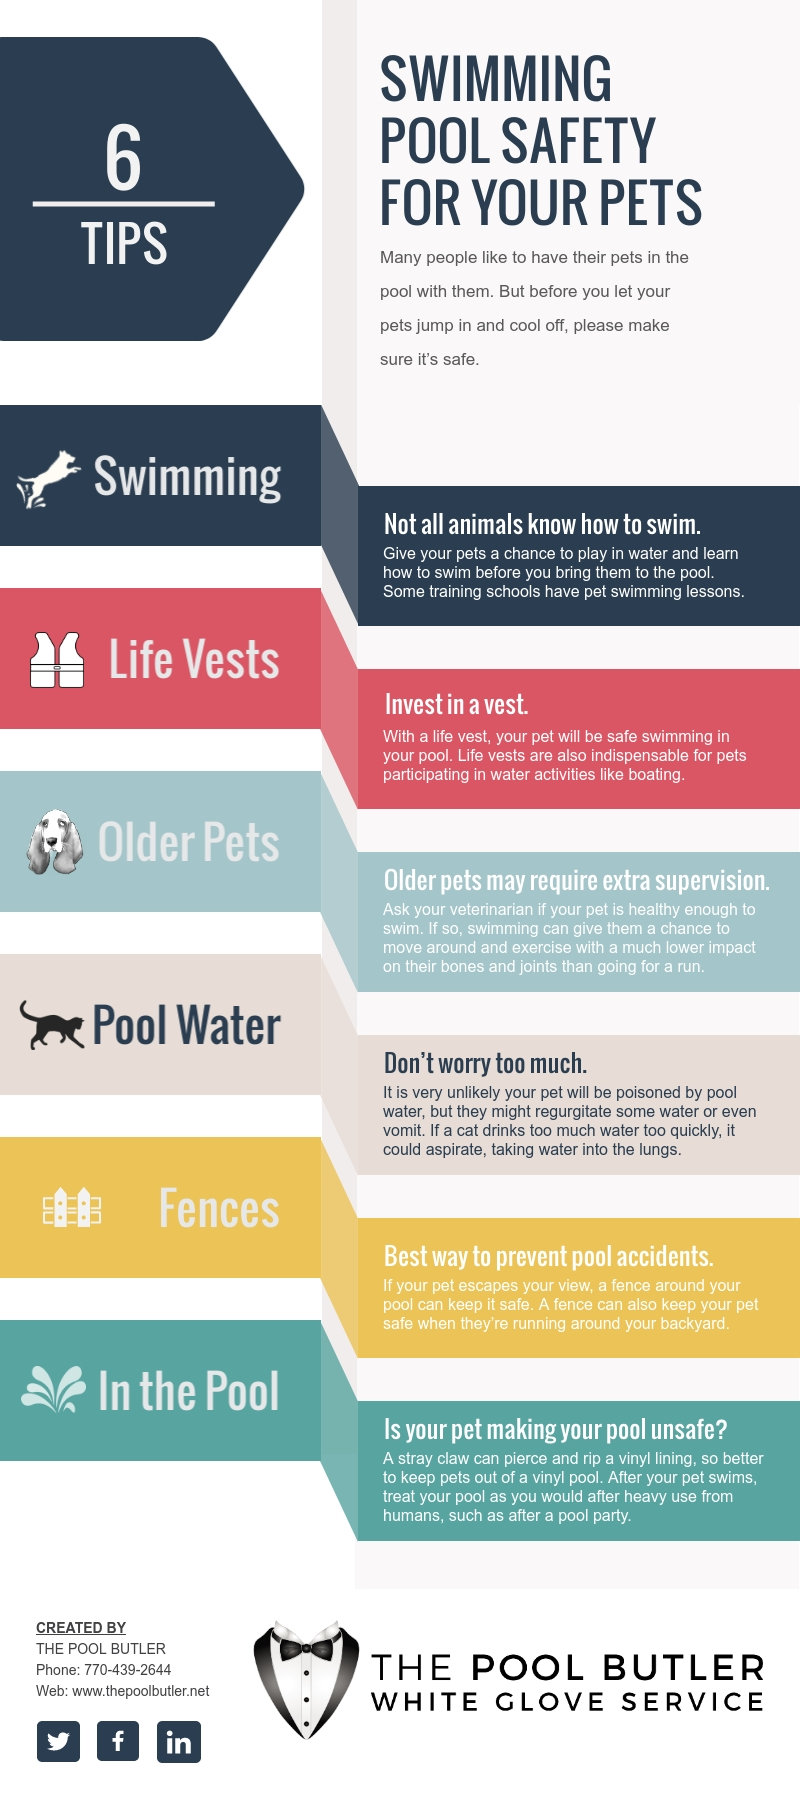 Swimming Pool Safety For Your Pets [infographic]